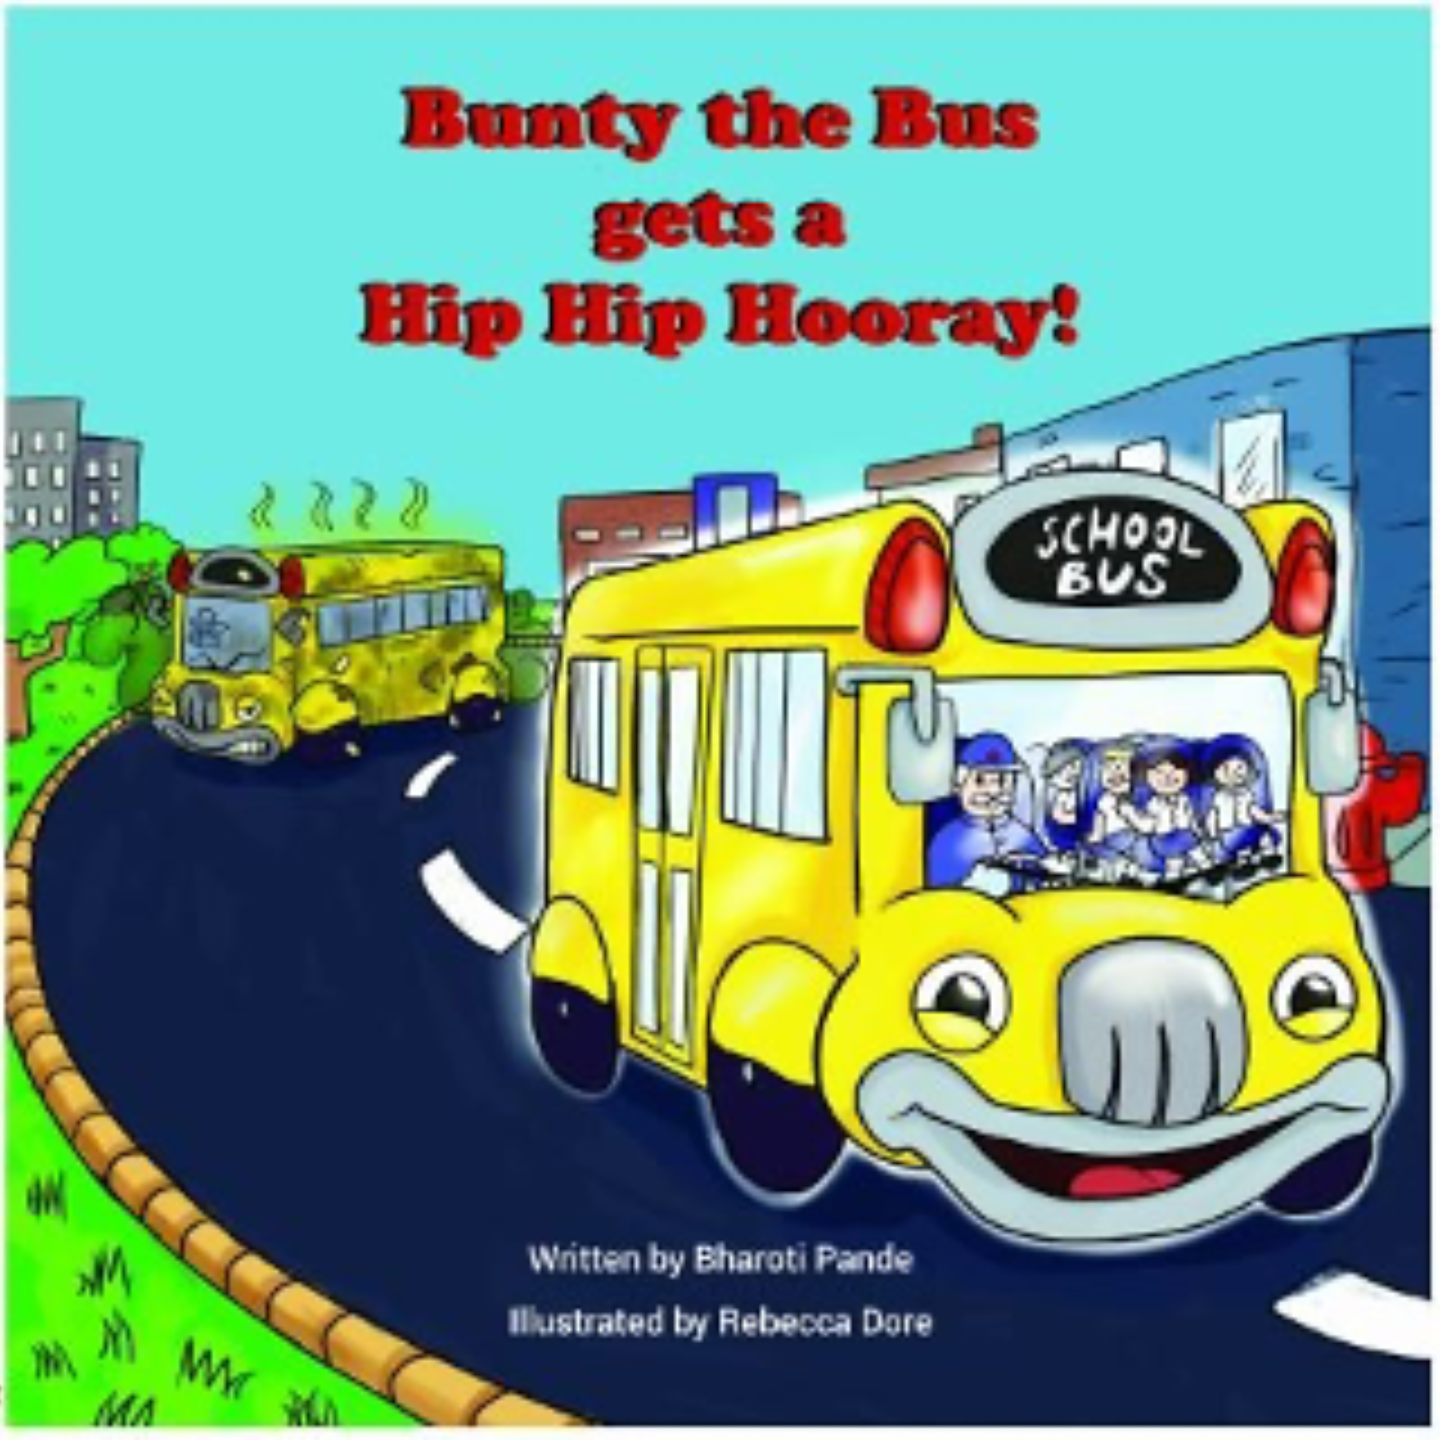 Bunty the Bus gets a Hip Hip Hooray! by Bharoti Pande